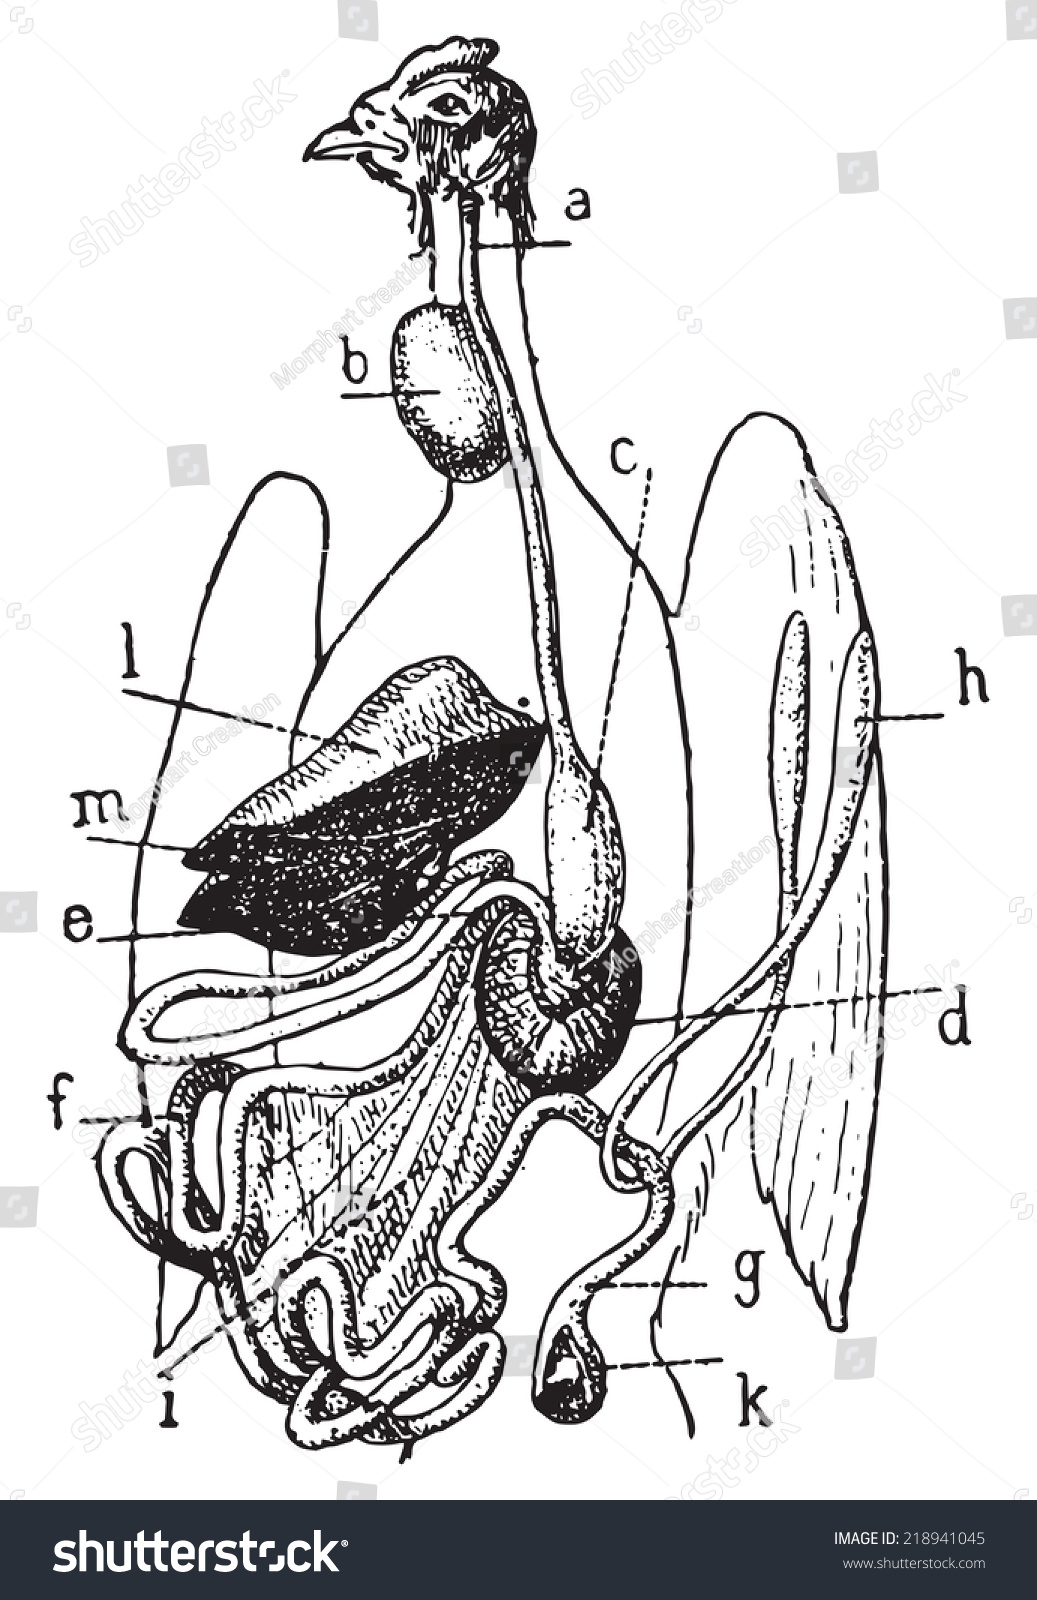 bird digestive system diagram 1996 civic wiring of vintage engraved illustration